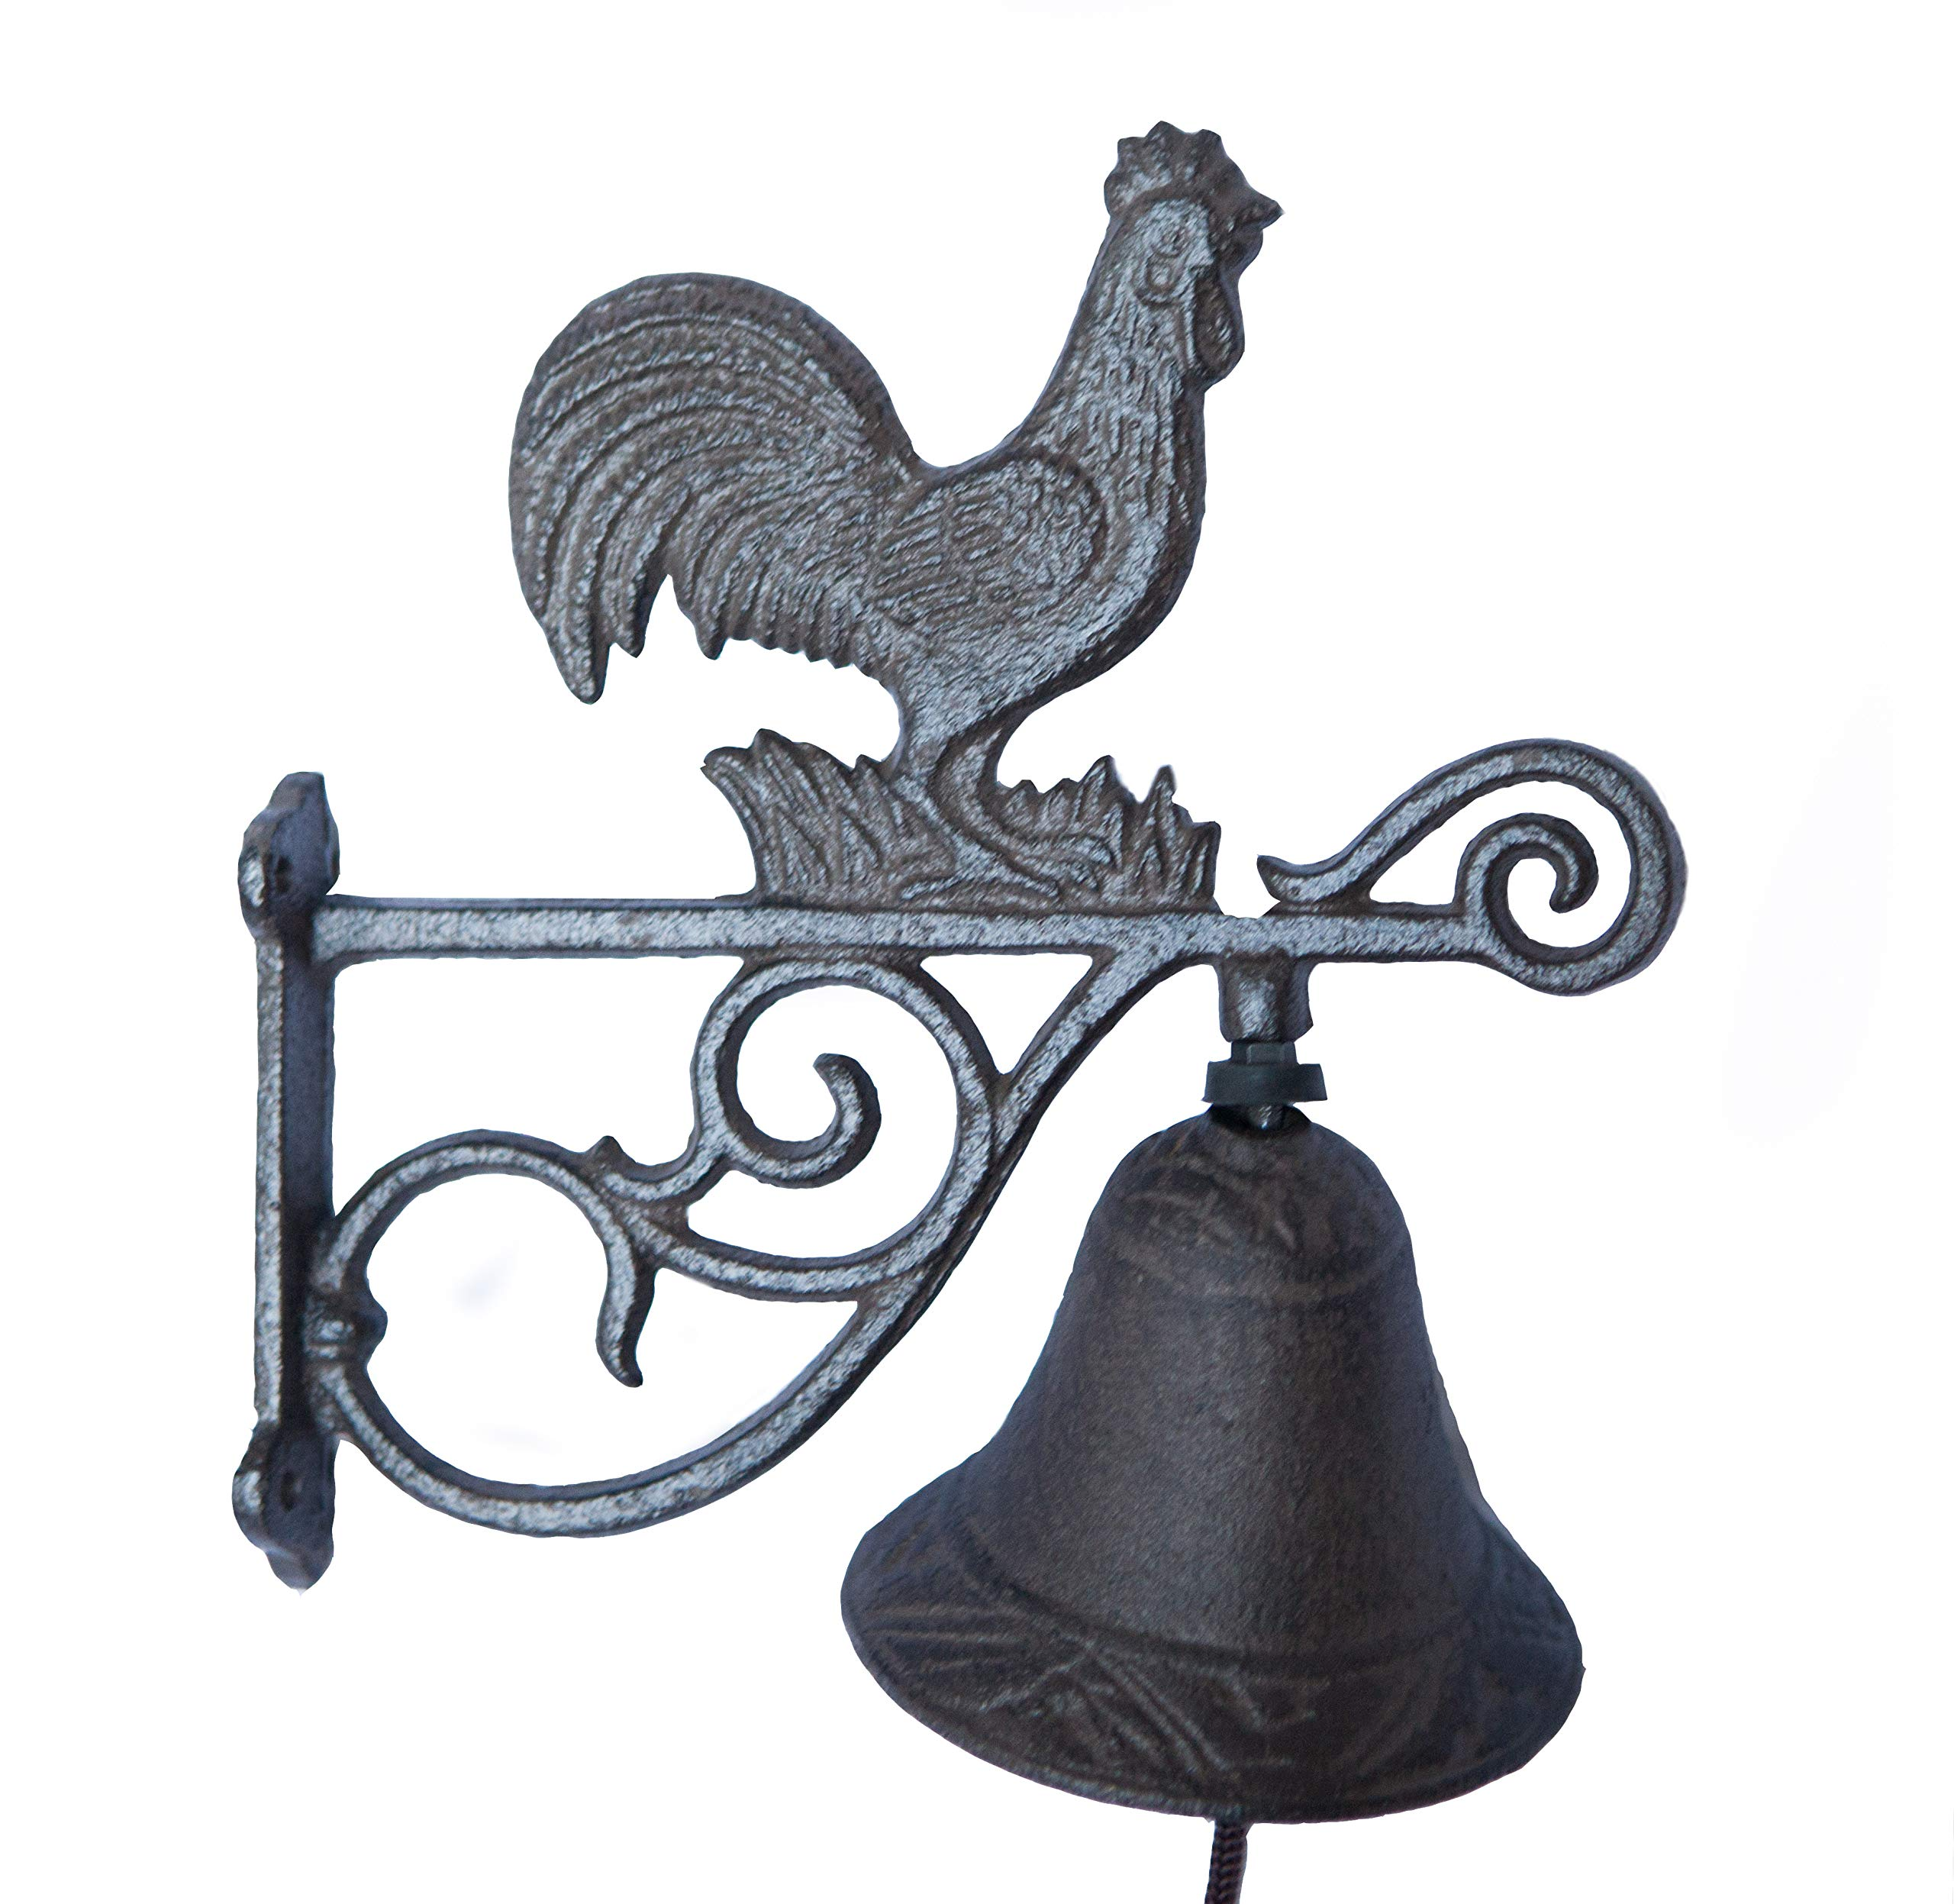 Hit Delights Cast Iron Rooster Chicken Bell on Rod. for Farm, Ranch, Cabin Decoration. by Hit Delights